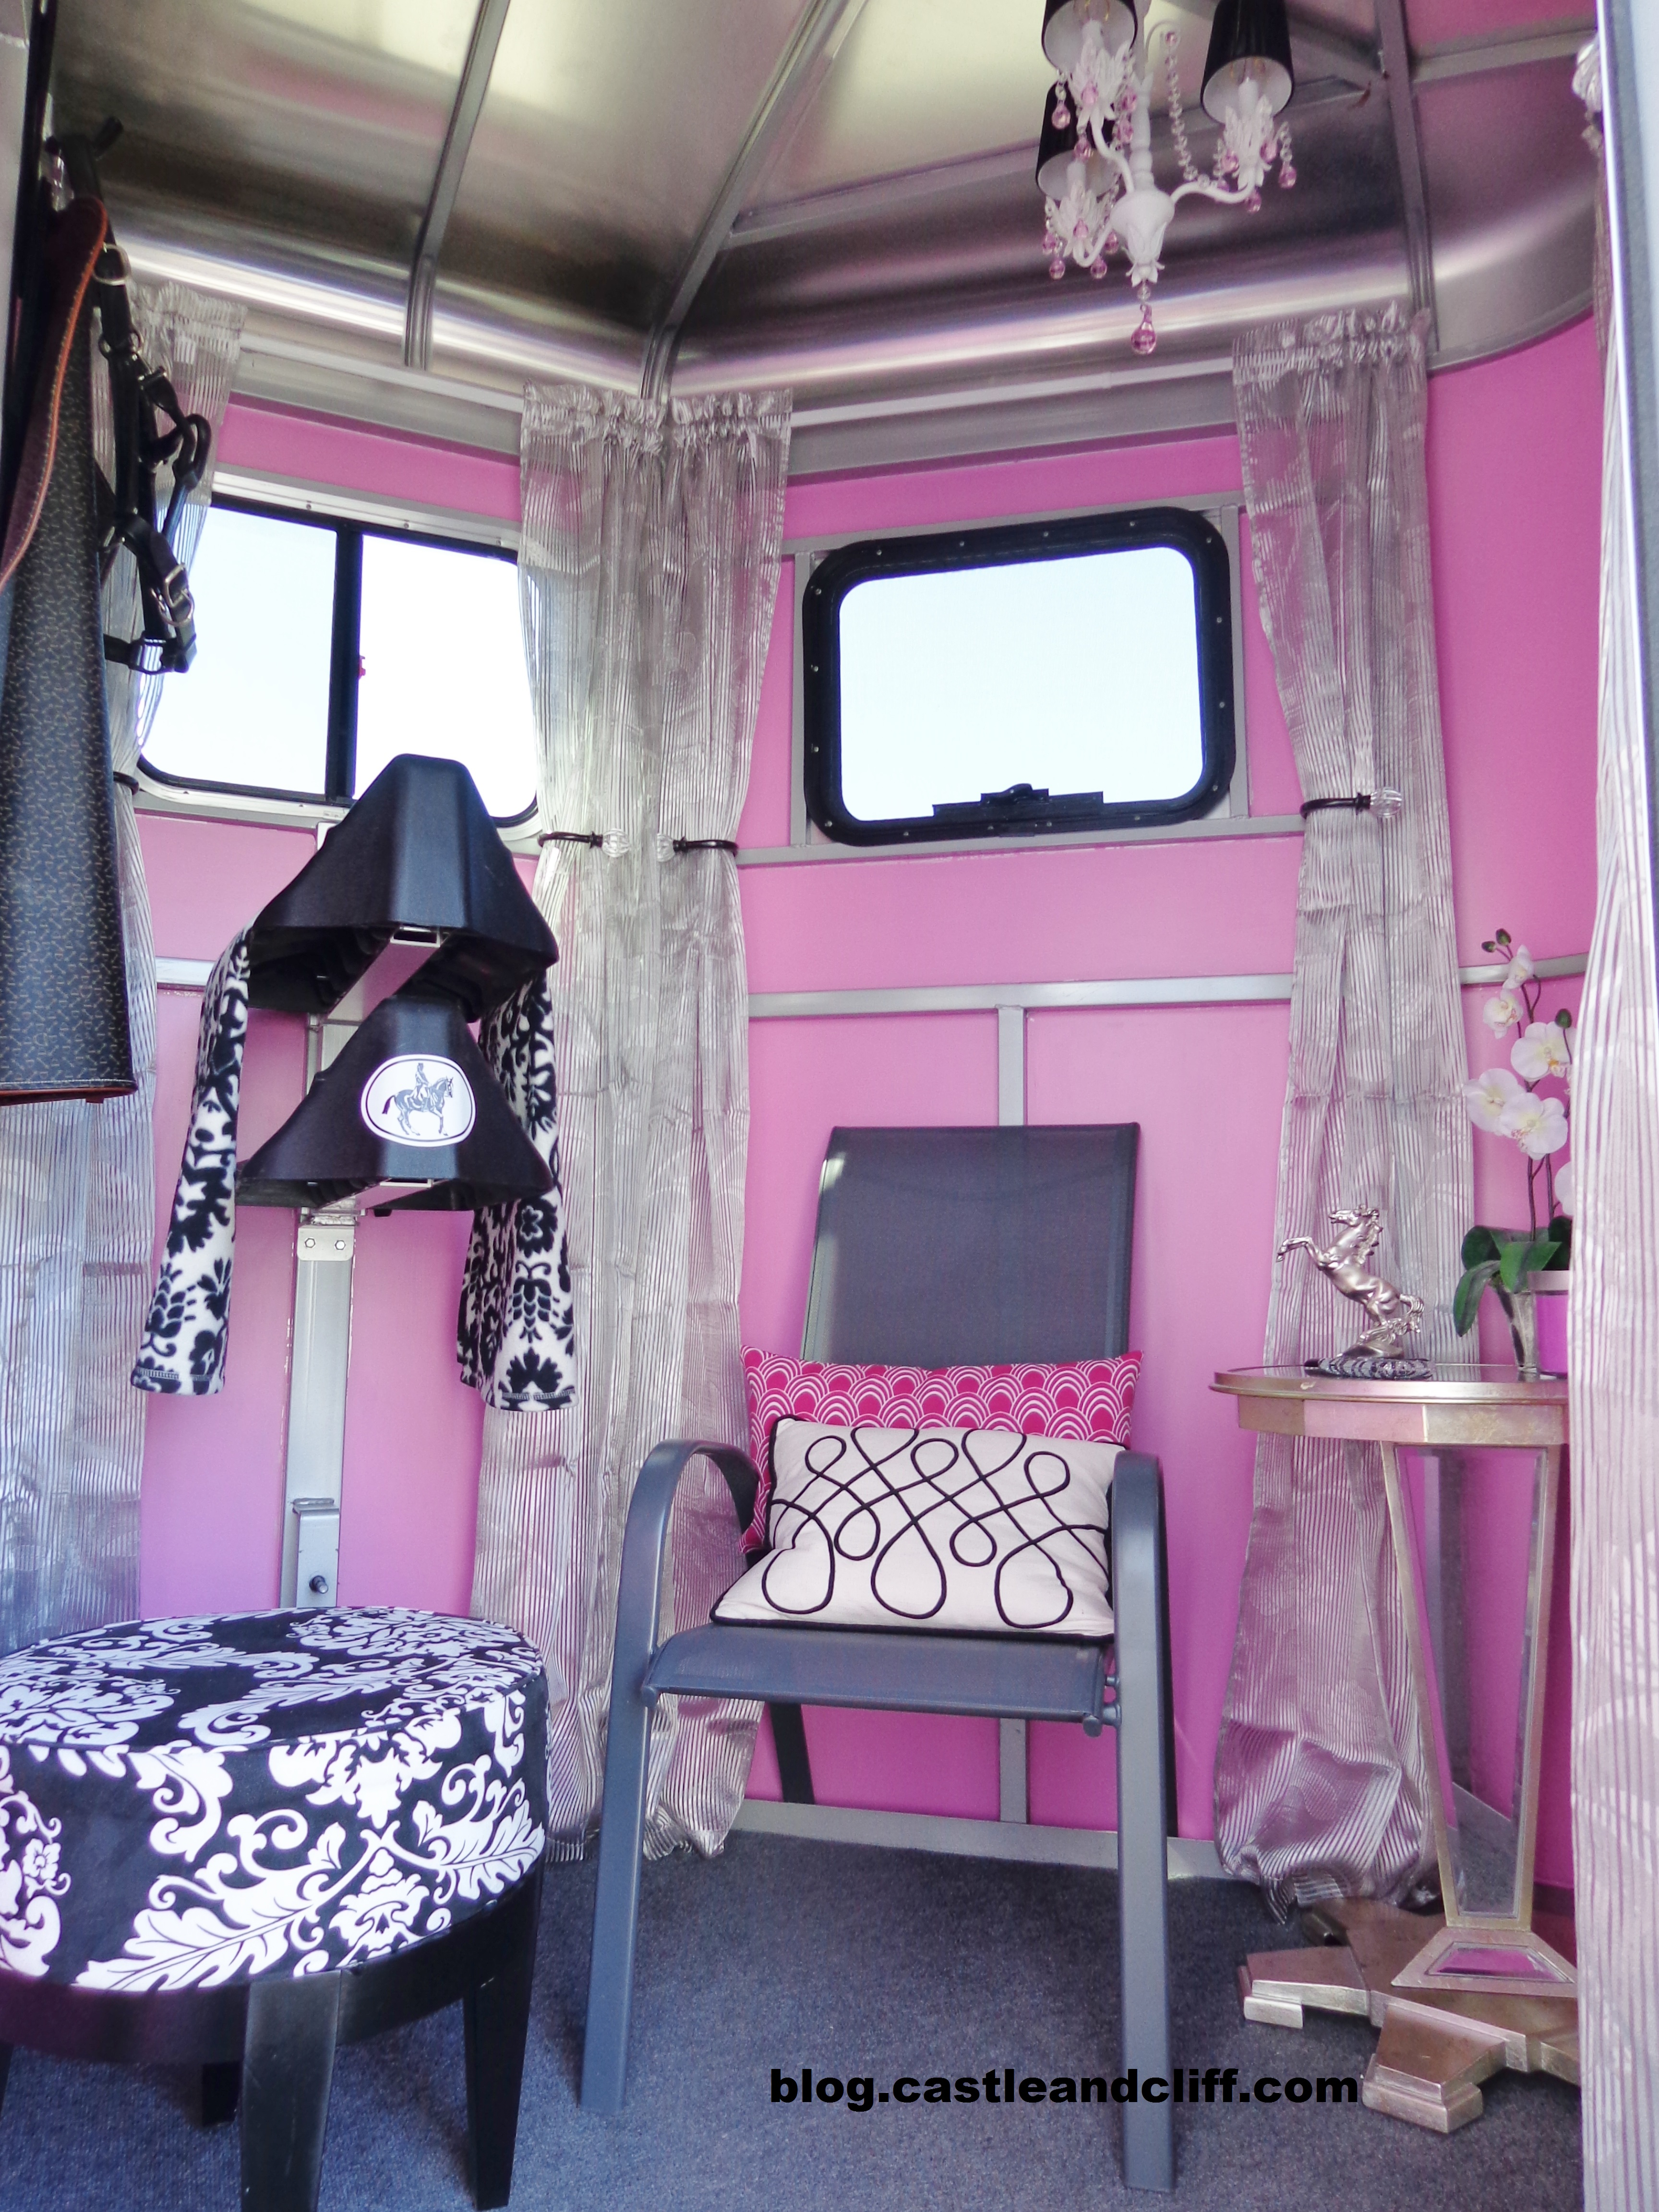 Horse trailer glam over castle and cliff blog for Room decoration ideas organization